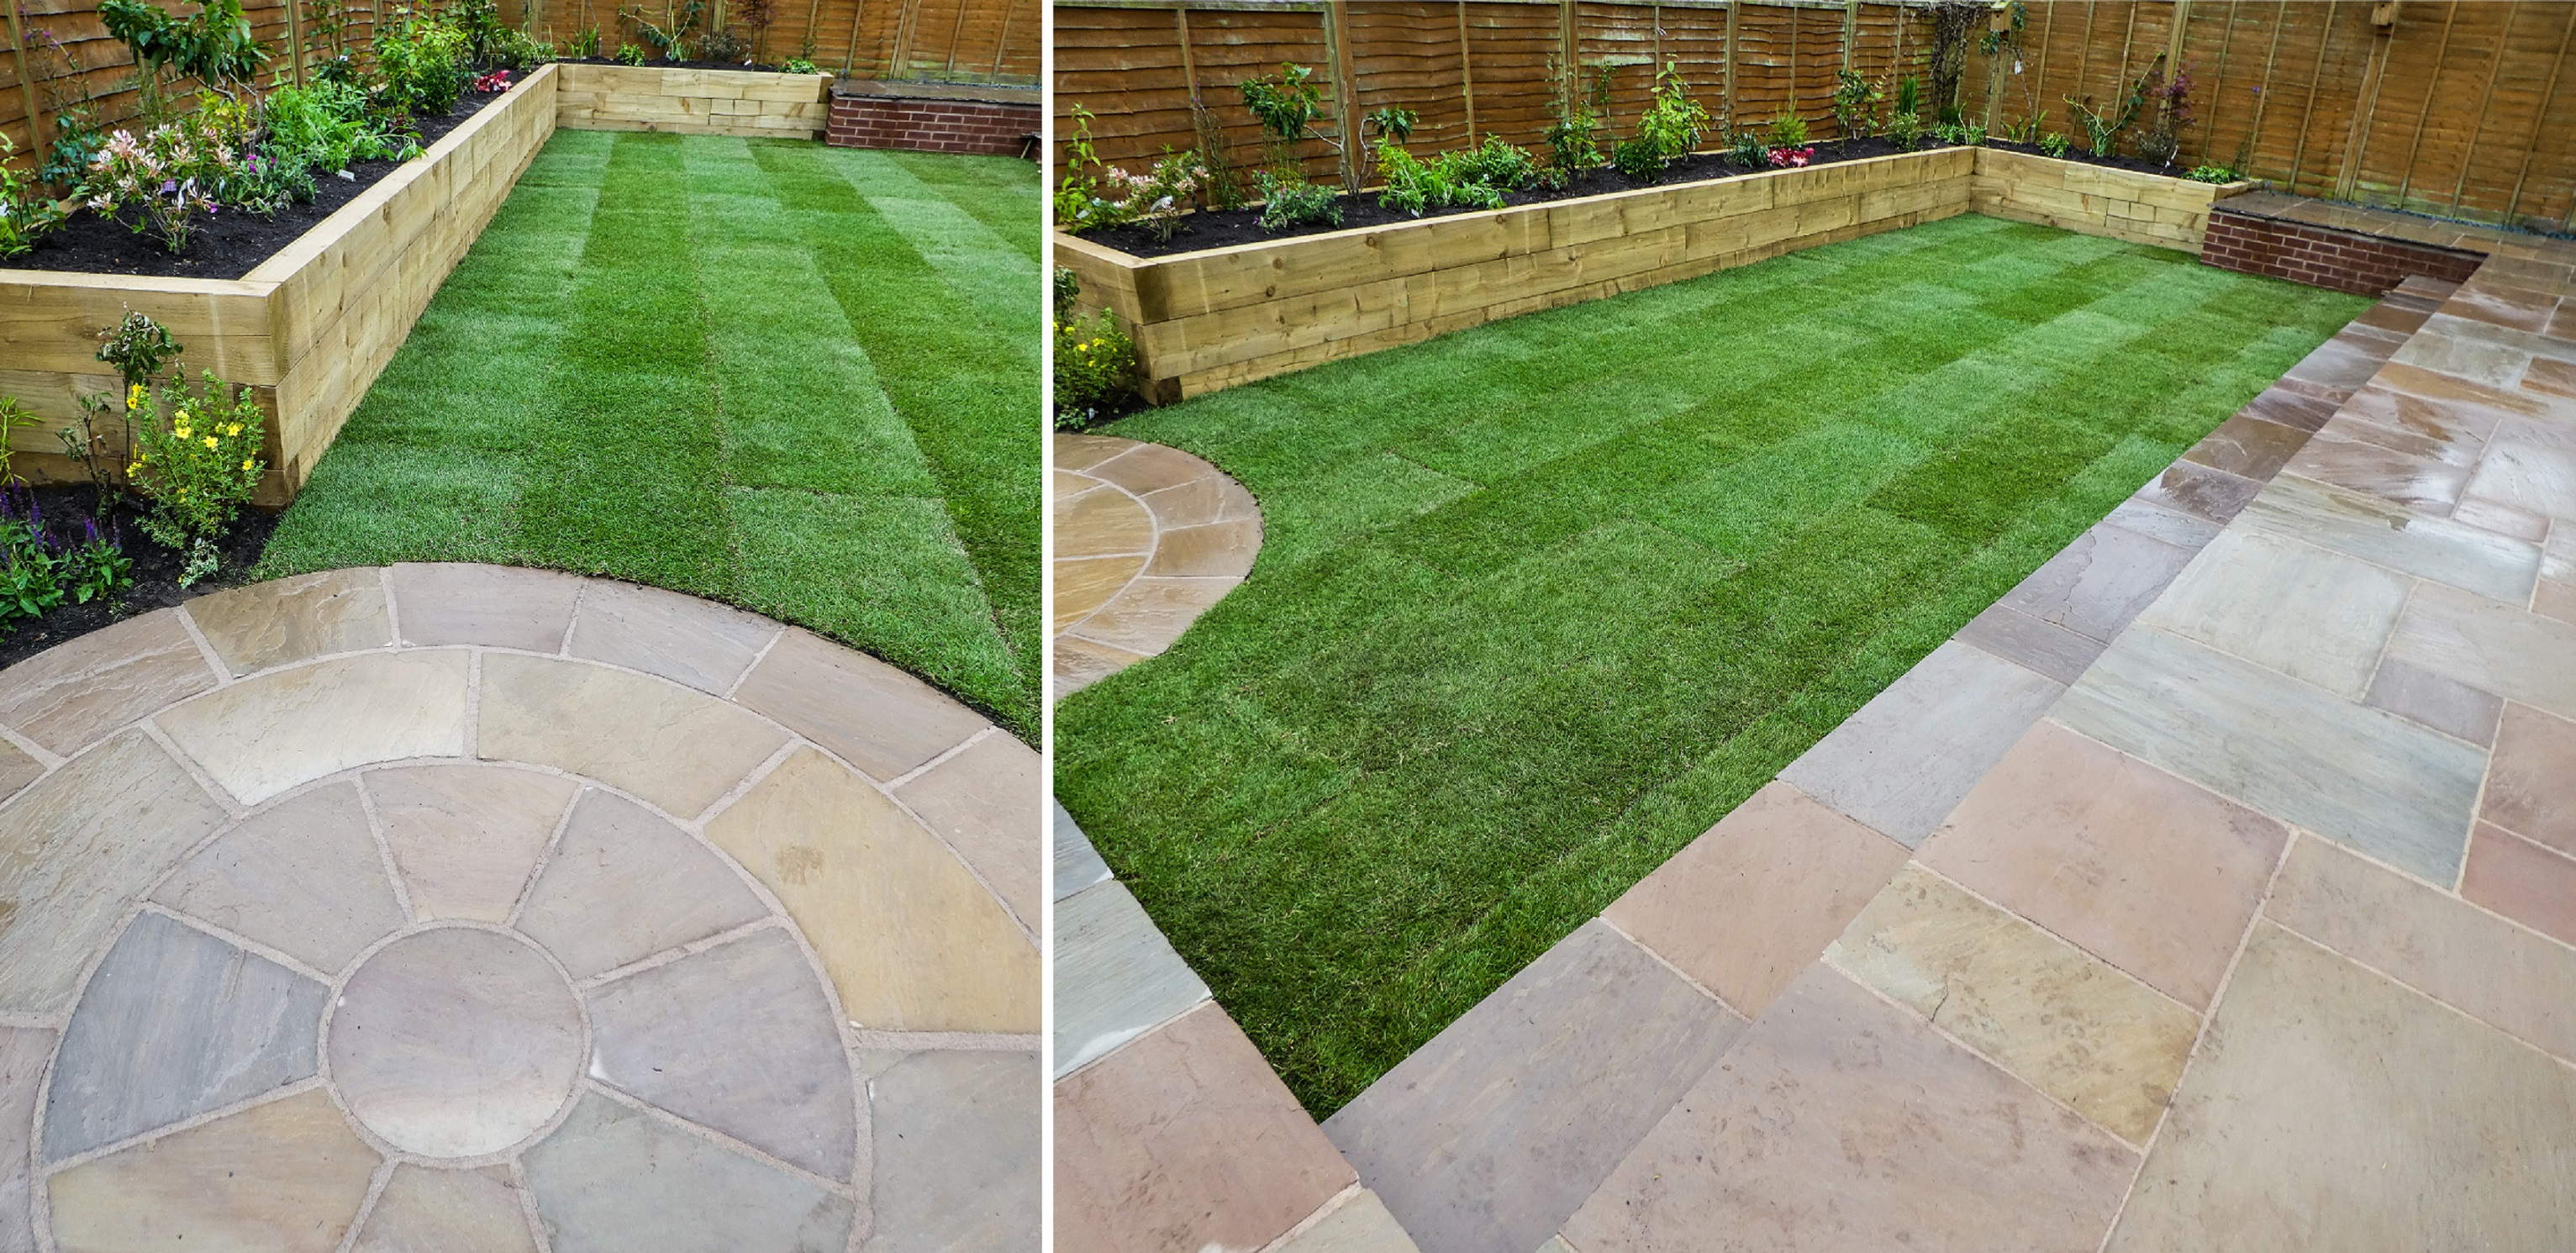 Landscaping in Cheshire - Raised Sleeper Border, Turfing and Indian Stone Paving